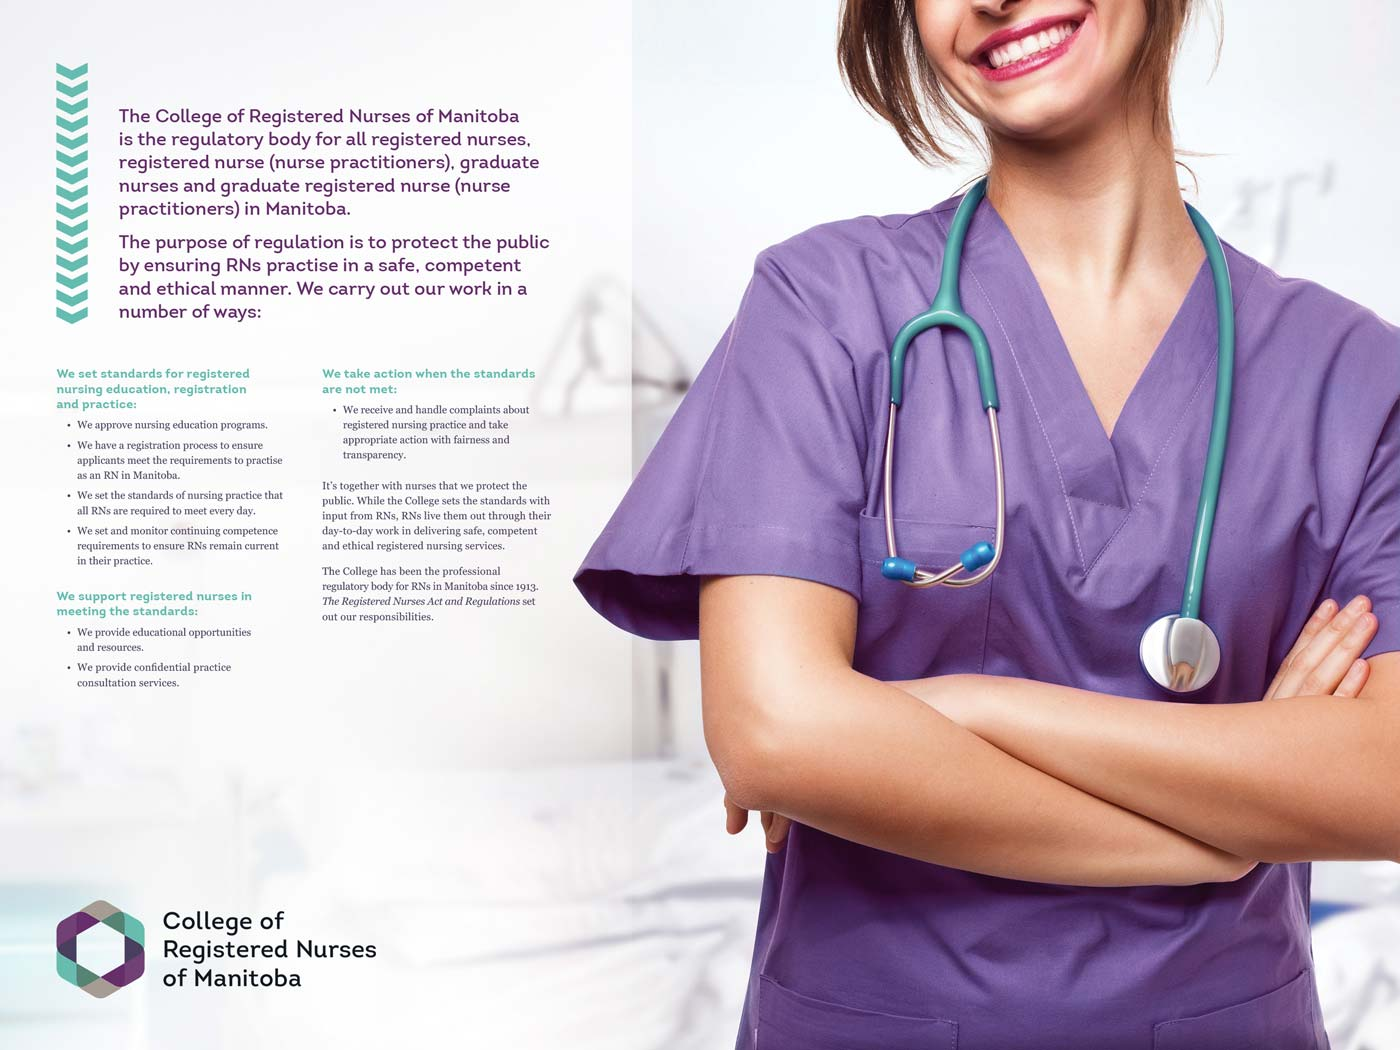 Inside the College of Registered Nurses of Manitoba annual report